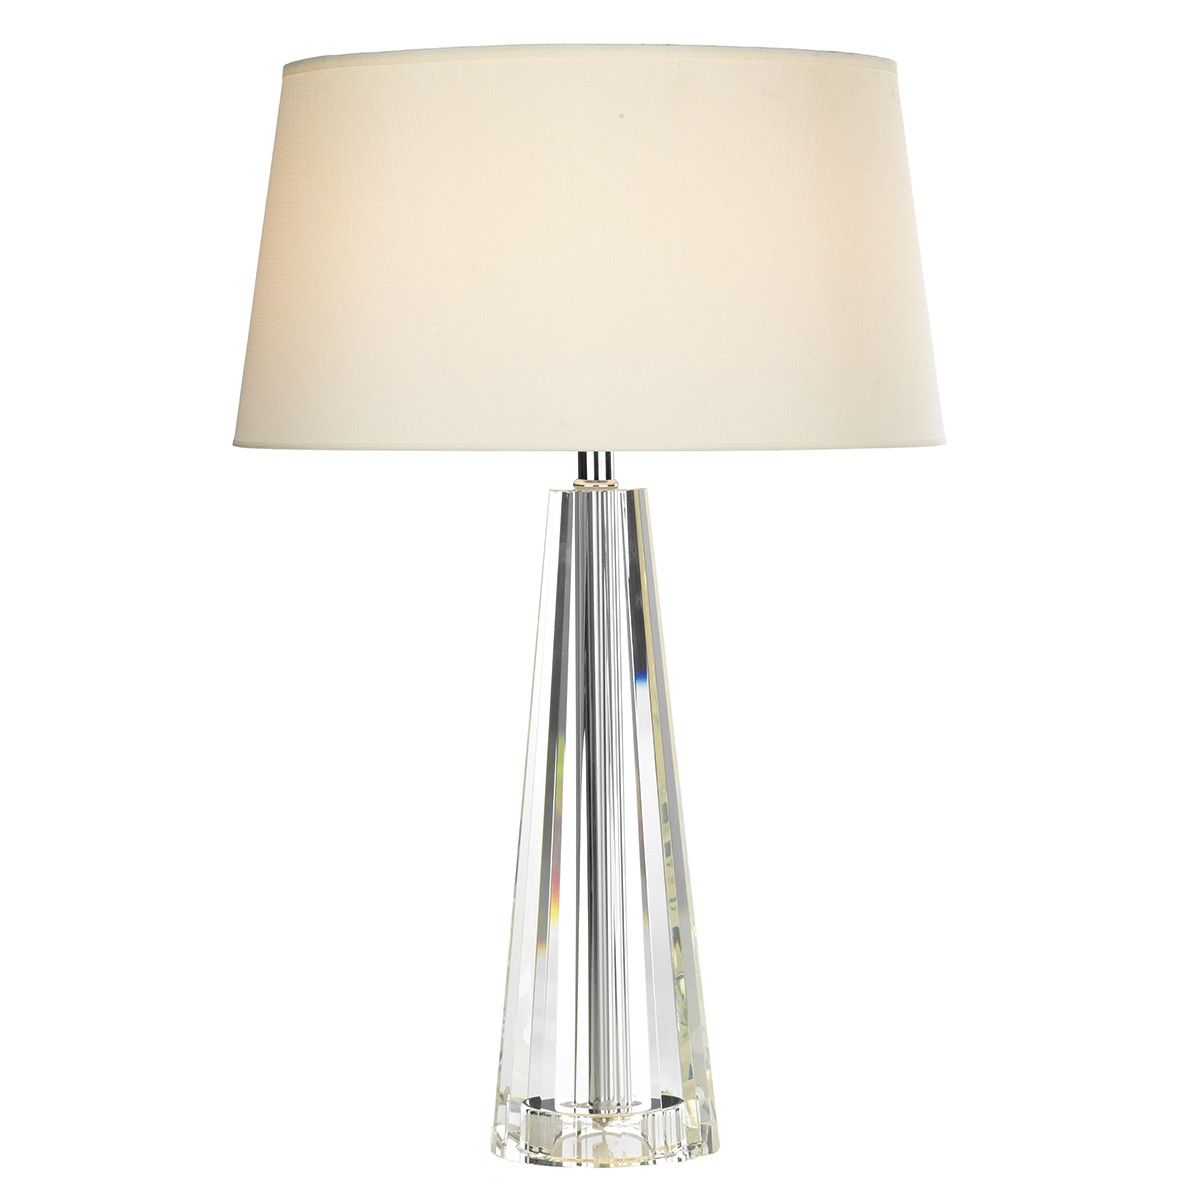 135 47 h cyprus table lamp tapered crystal complete with cyp1233 135 47 h cyprus table lamp tapered crystal complete with cyp1233 shade aloadofball Choice Image